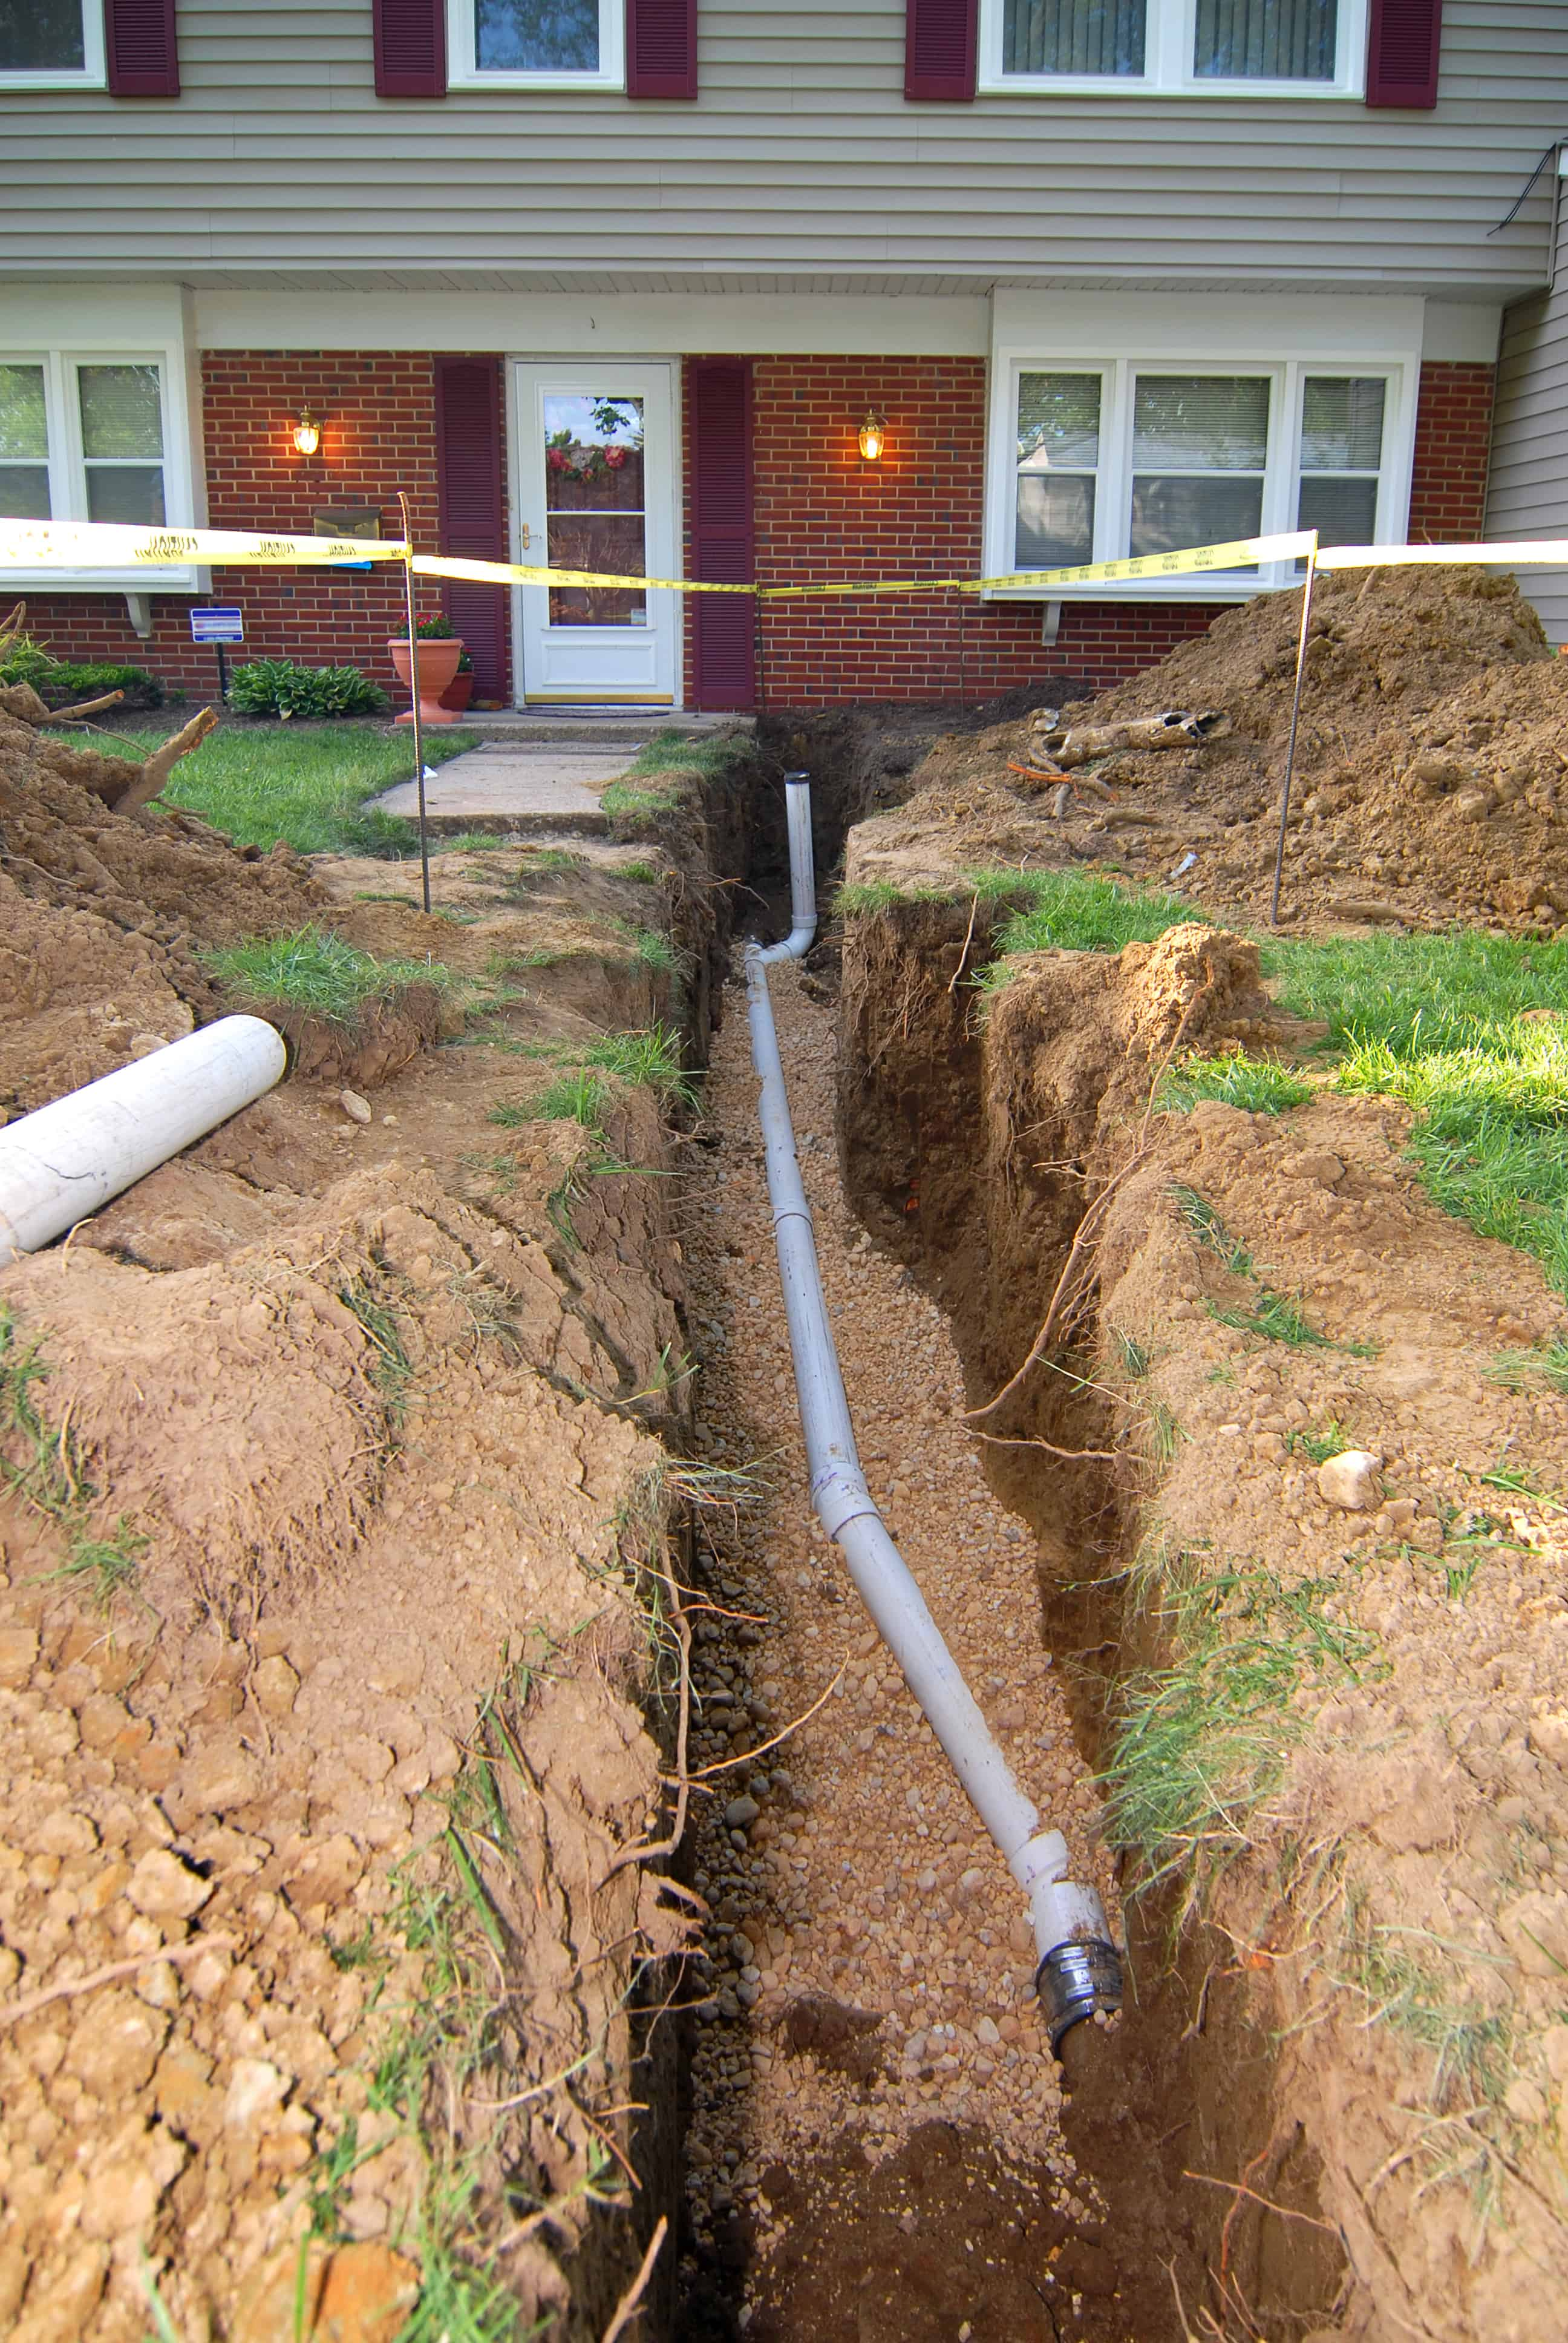 Main line being worked on outside of a home